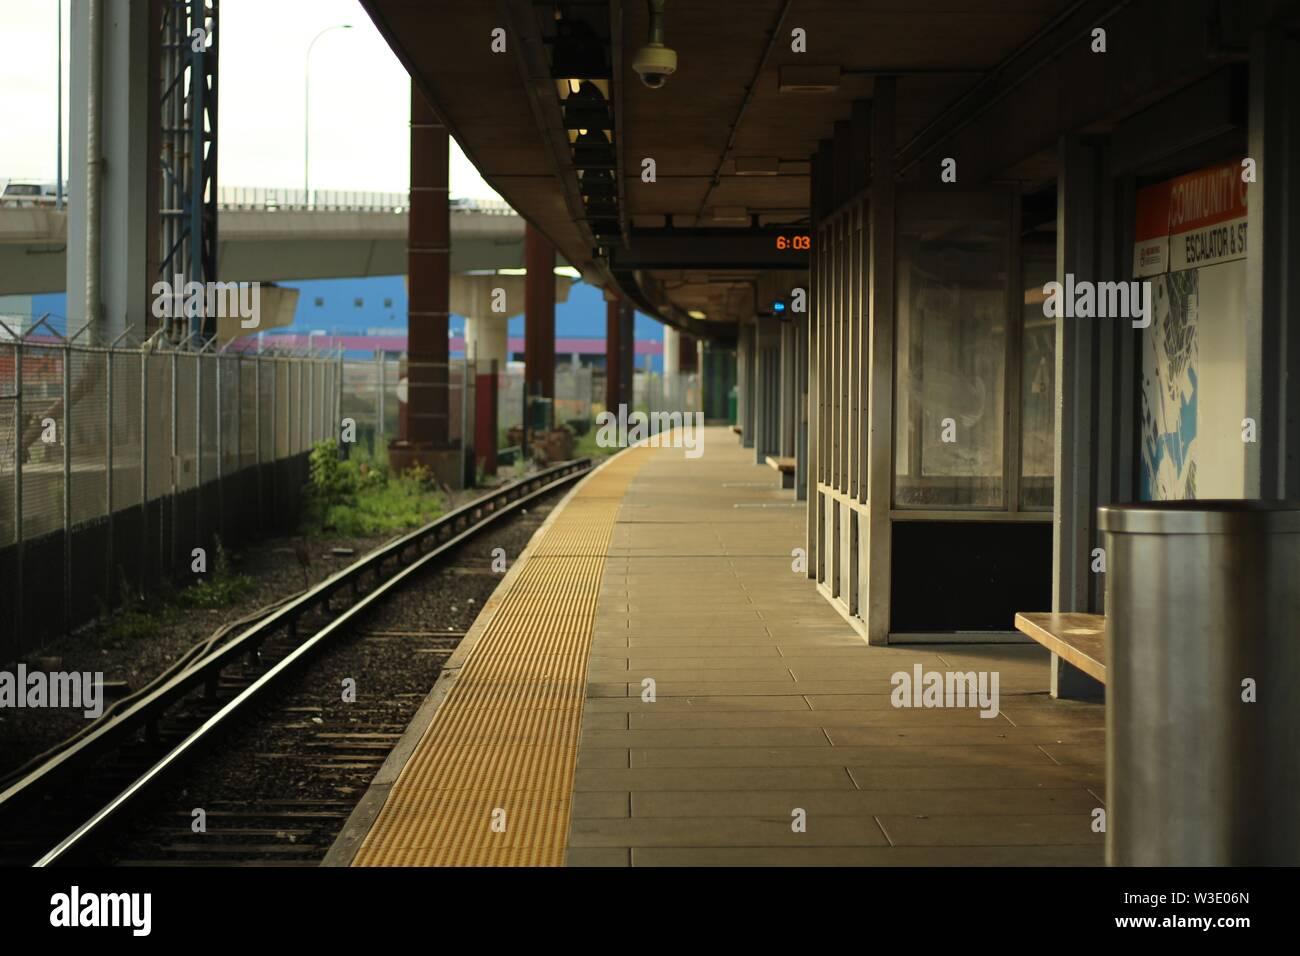 An empty train station on a sunny day with a bridge in the background - Stock Image